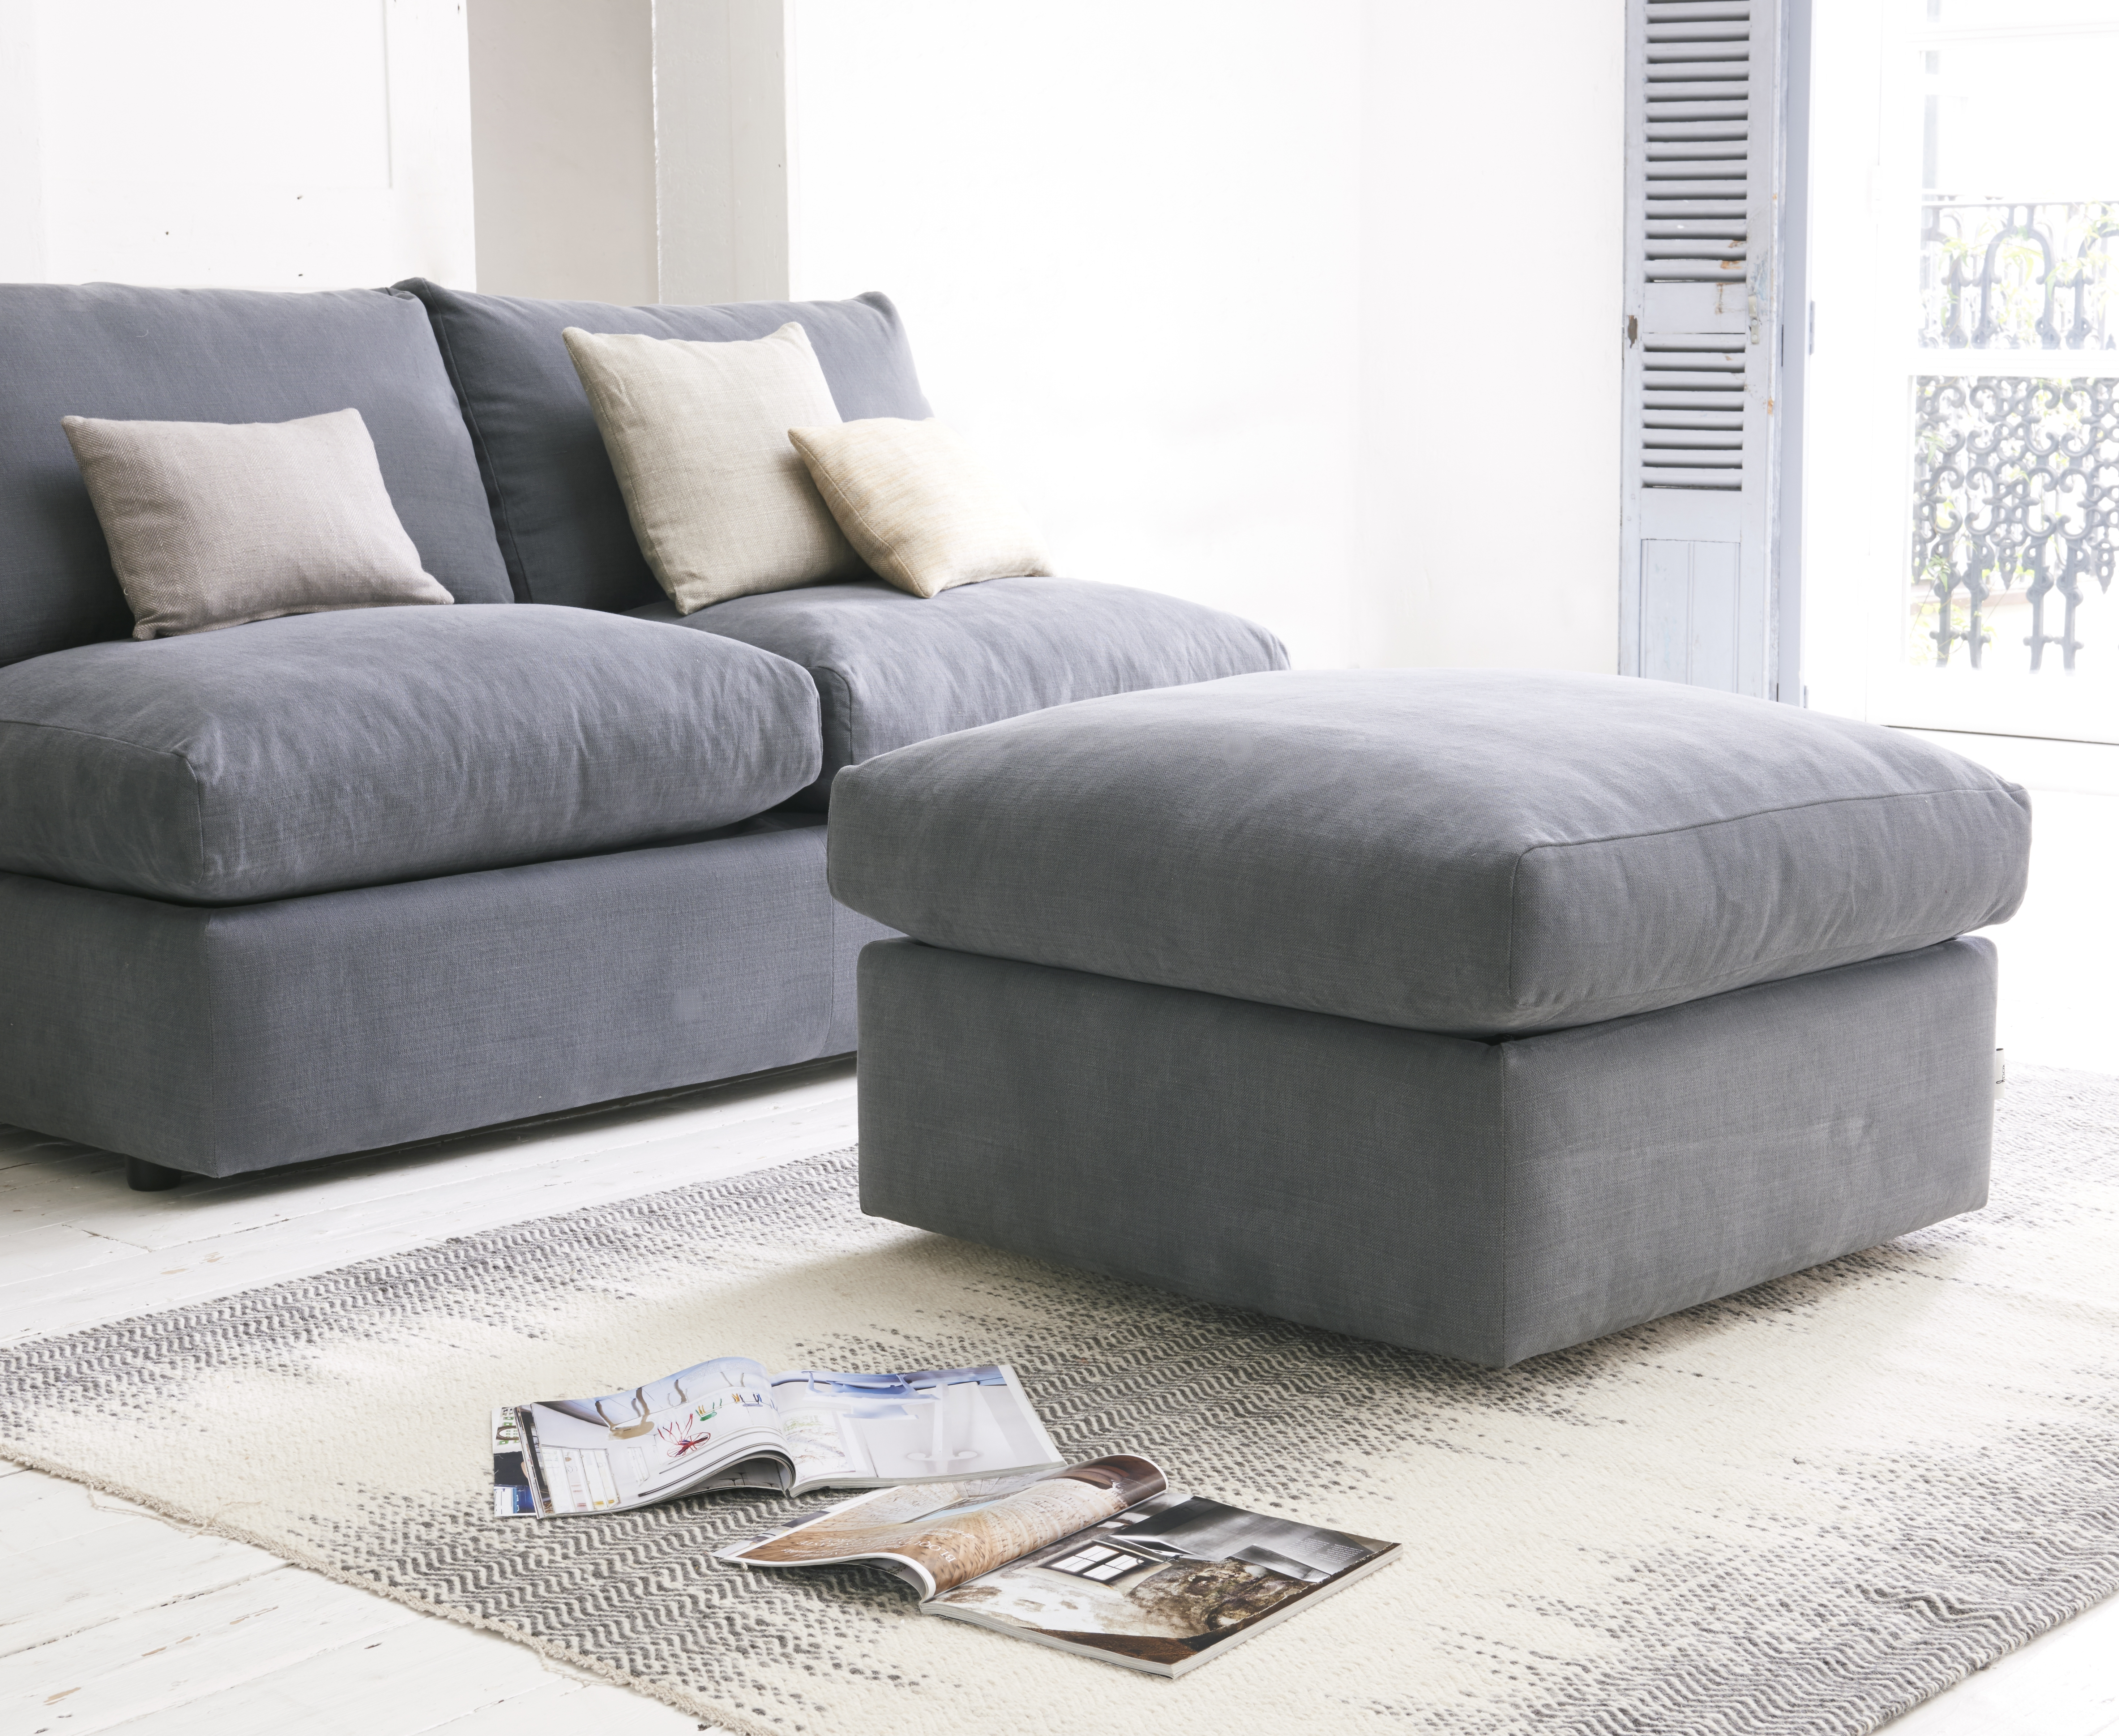 Chatnap Modular Sofa | Armless Sofa With Storage | Loaf | Loaf In Storage Sofas (View 2 of 10)